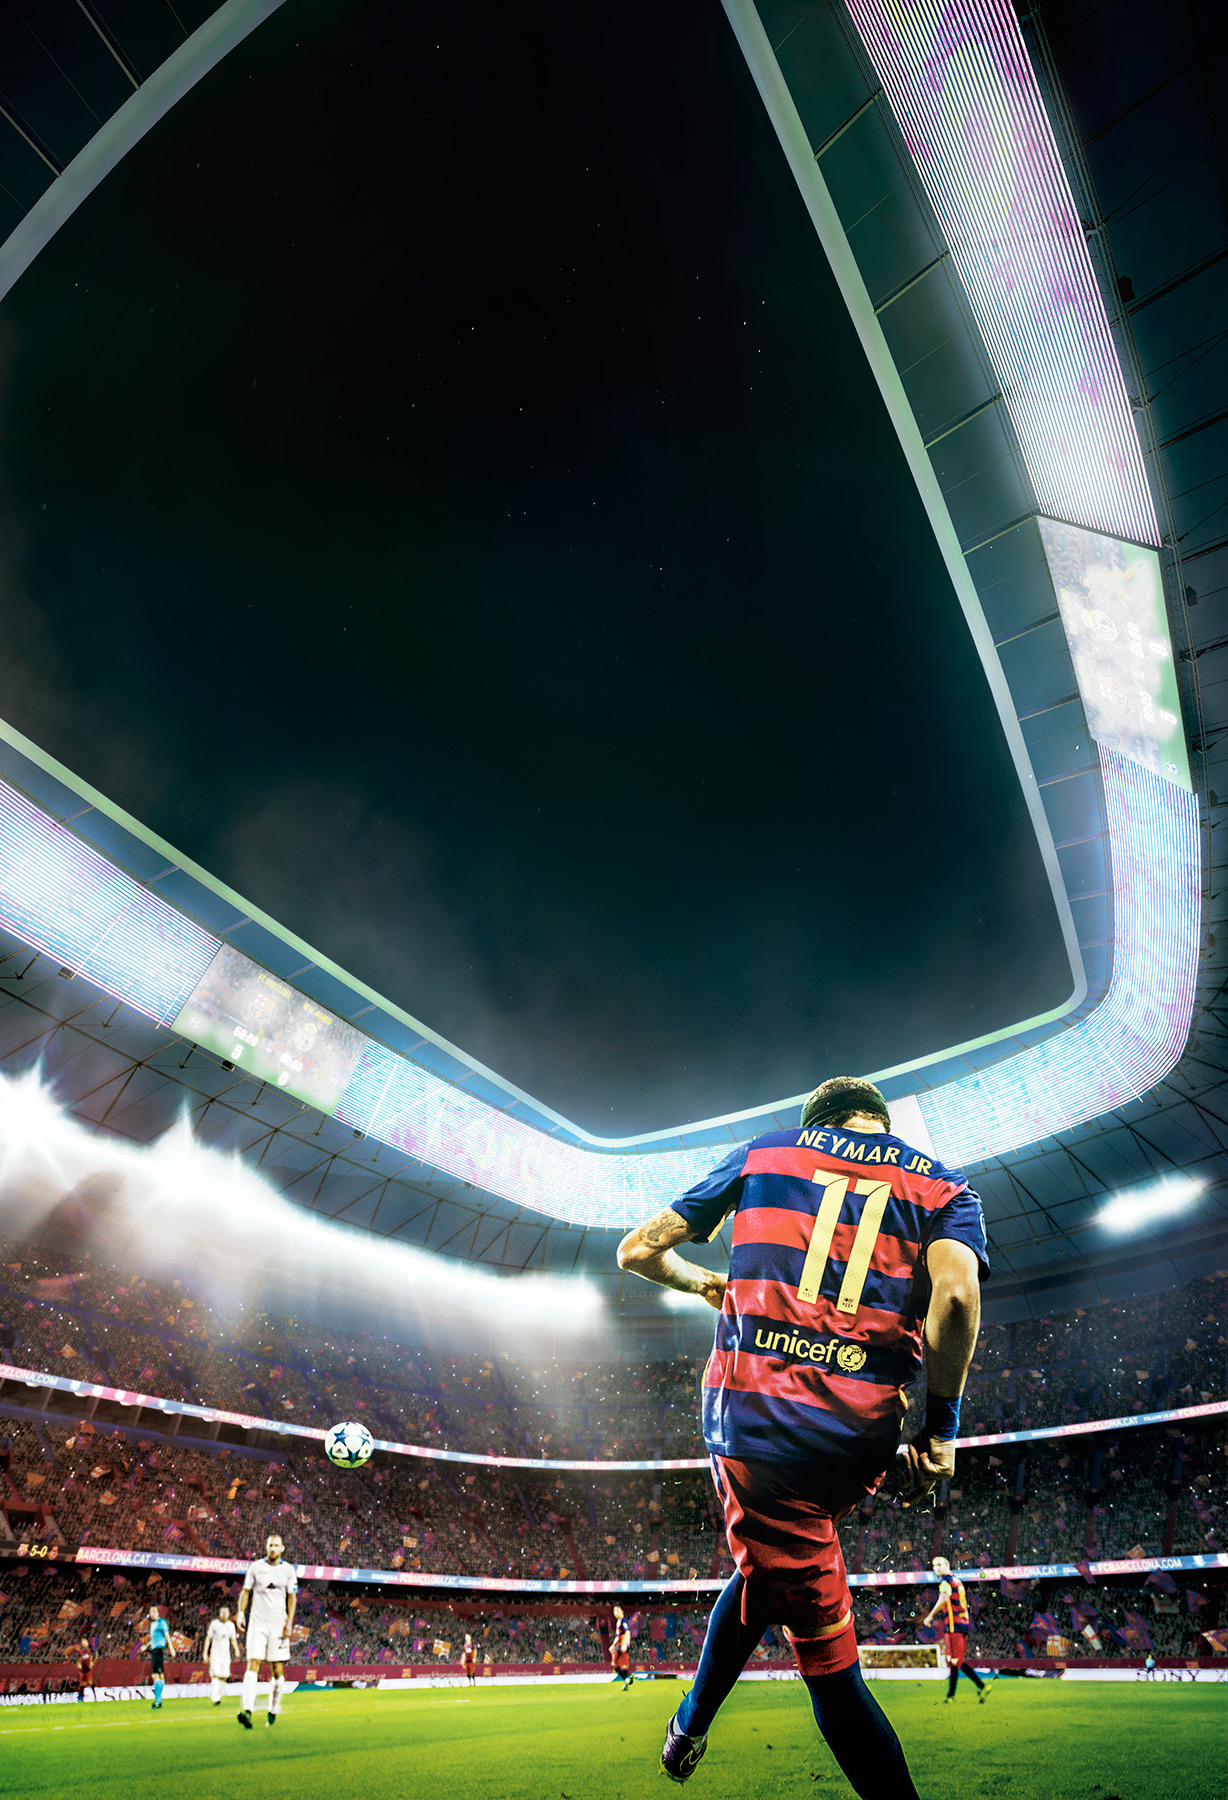 Render FCBarcelona Stadium with Neymar